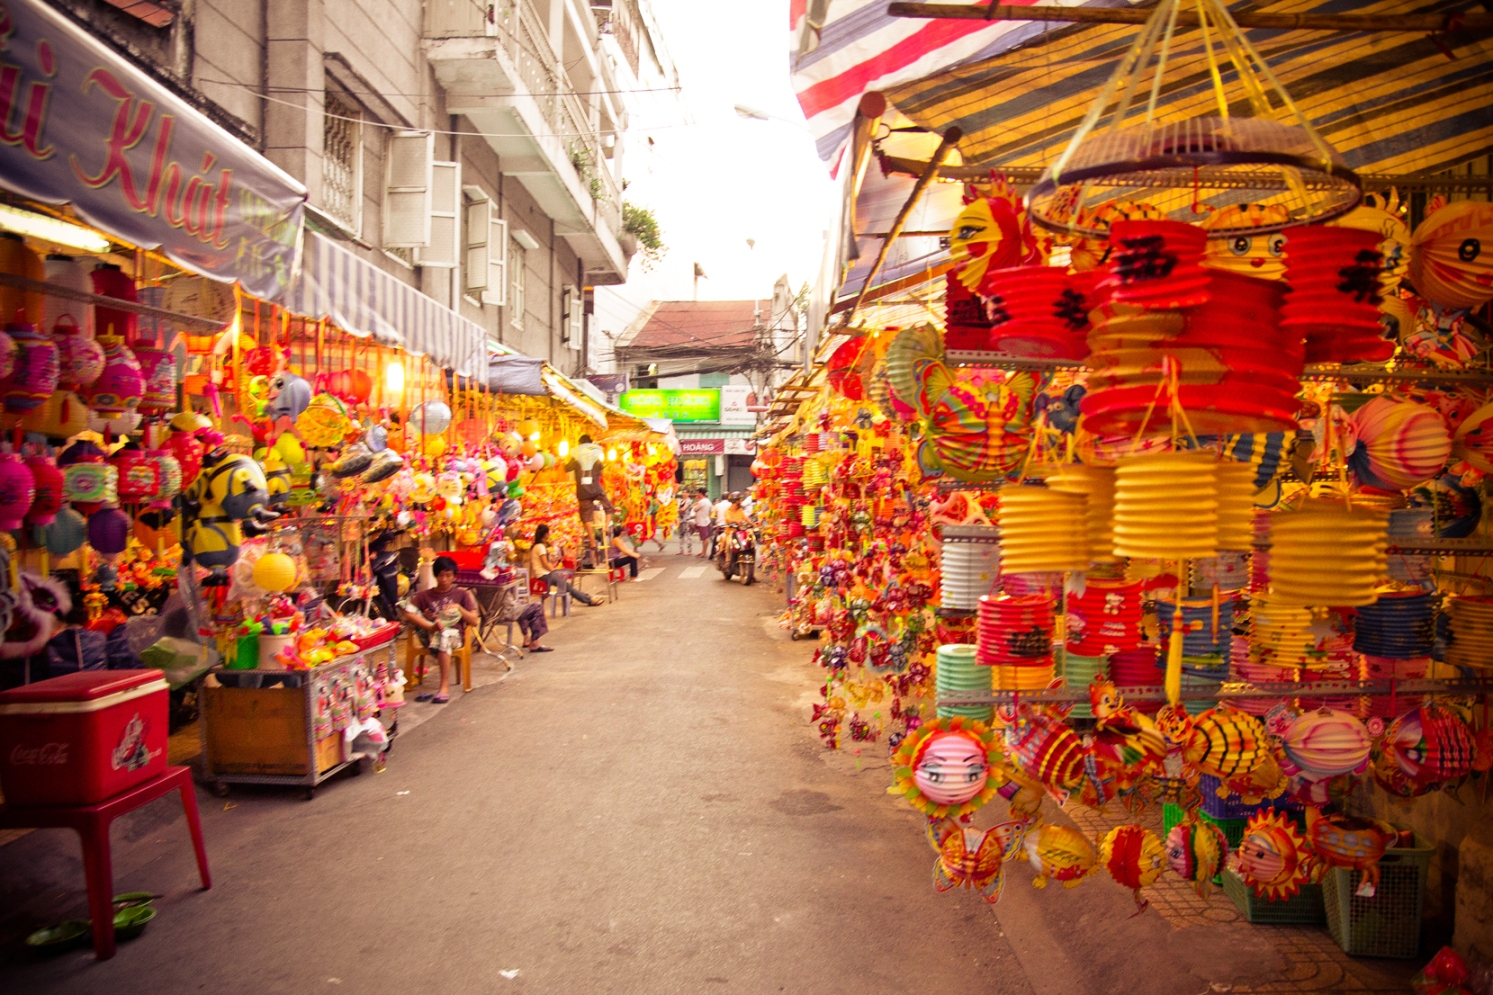 saigon china town - THE TOP 5 Ho Chi Minh City Shore Excursions